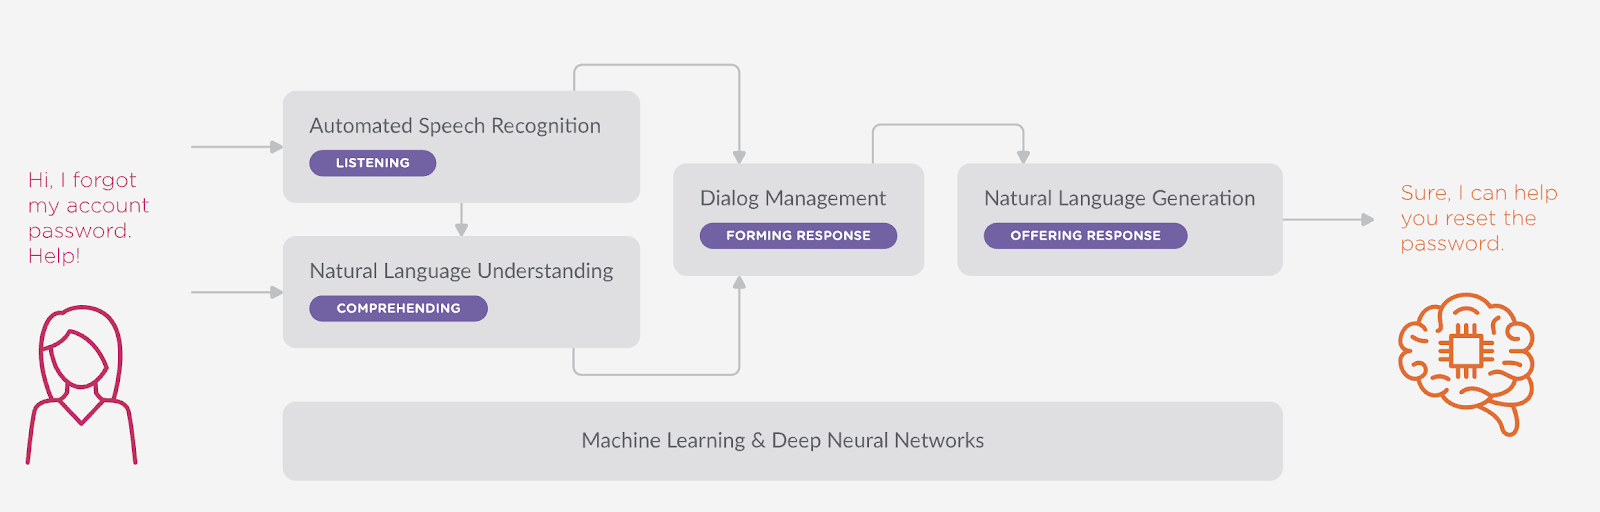 Machine Learning and Deep Neural Networks